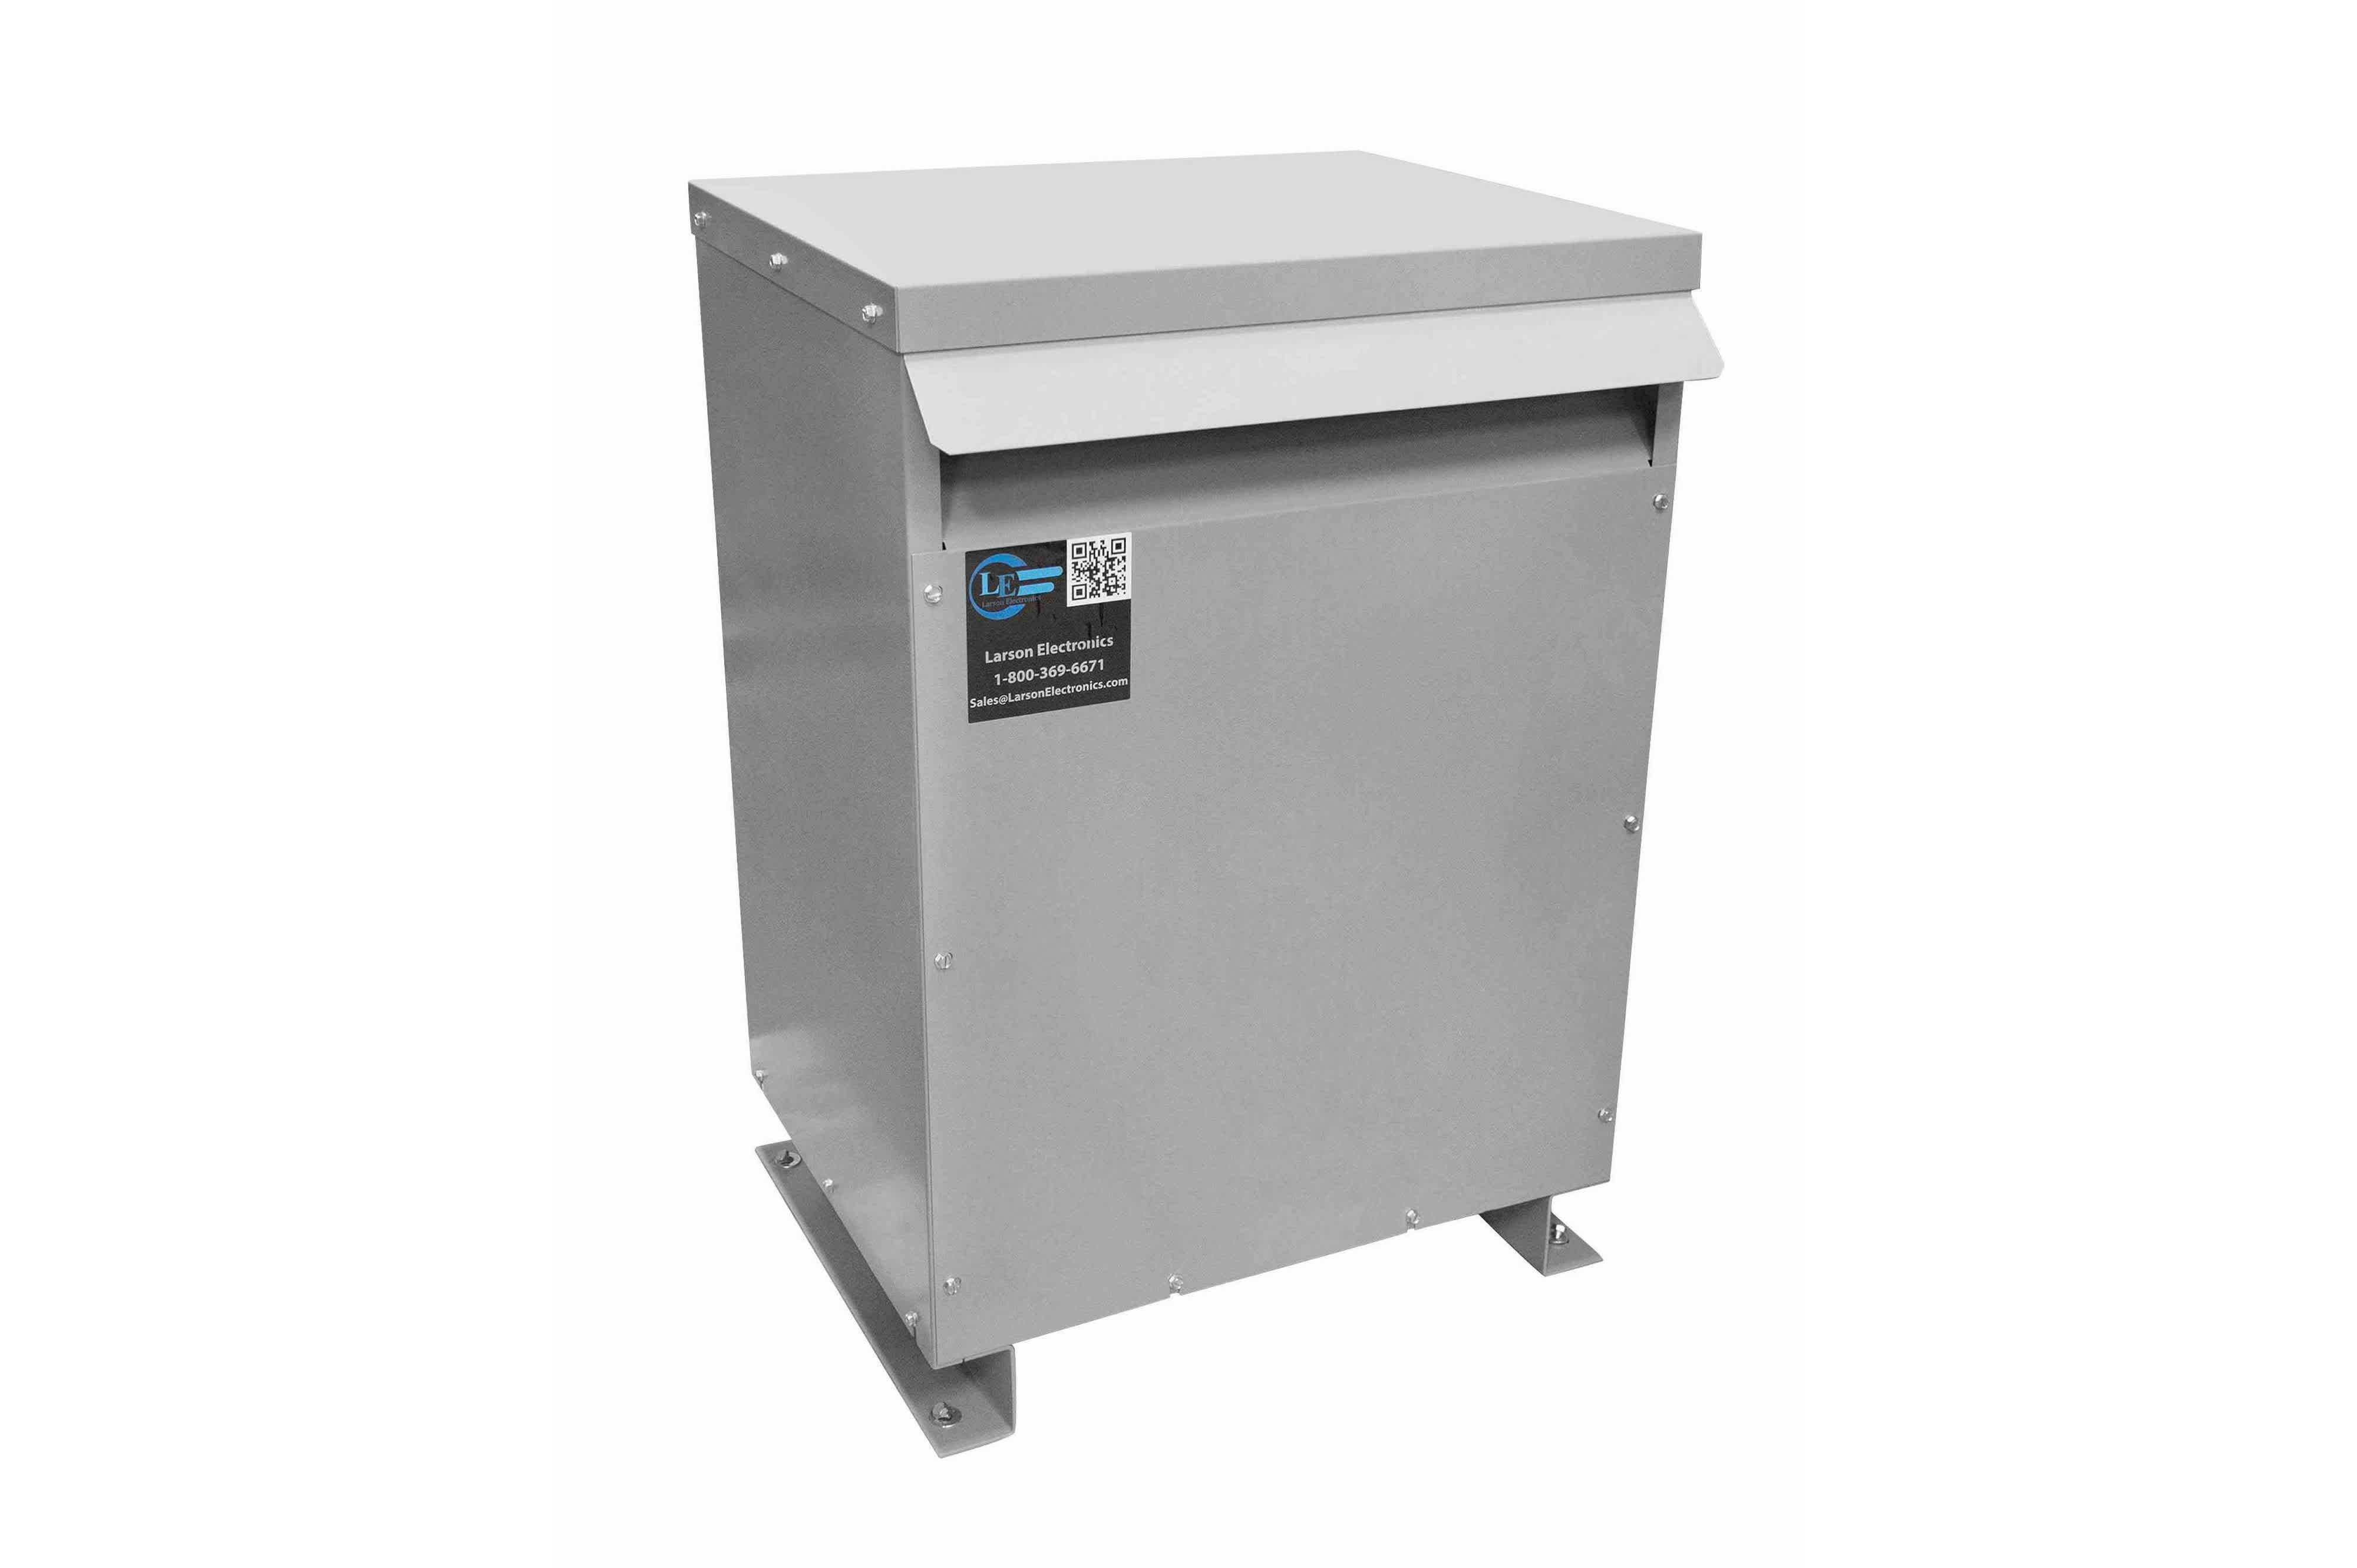 225 kVA 3PH Isolation Transformer, 208V Delta Primary, 400V Delta Secondary, N3R, Ventilated, 60 Hz